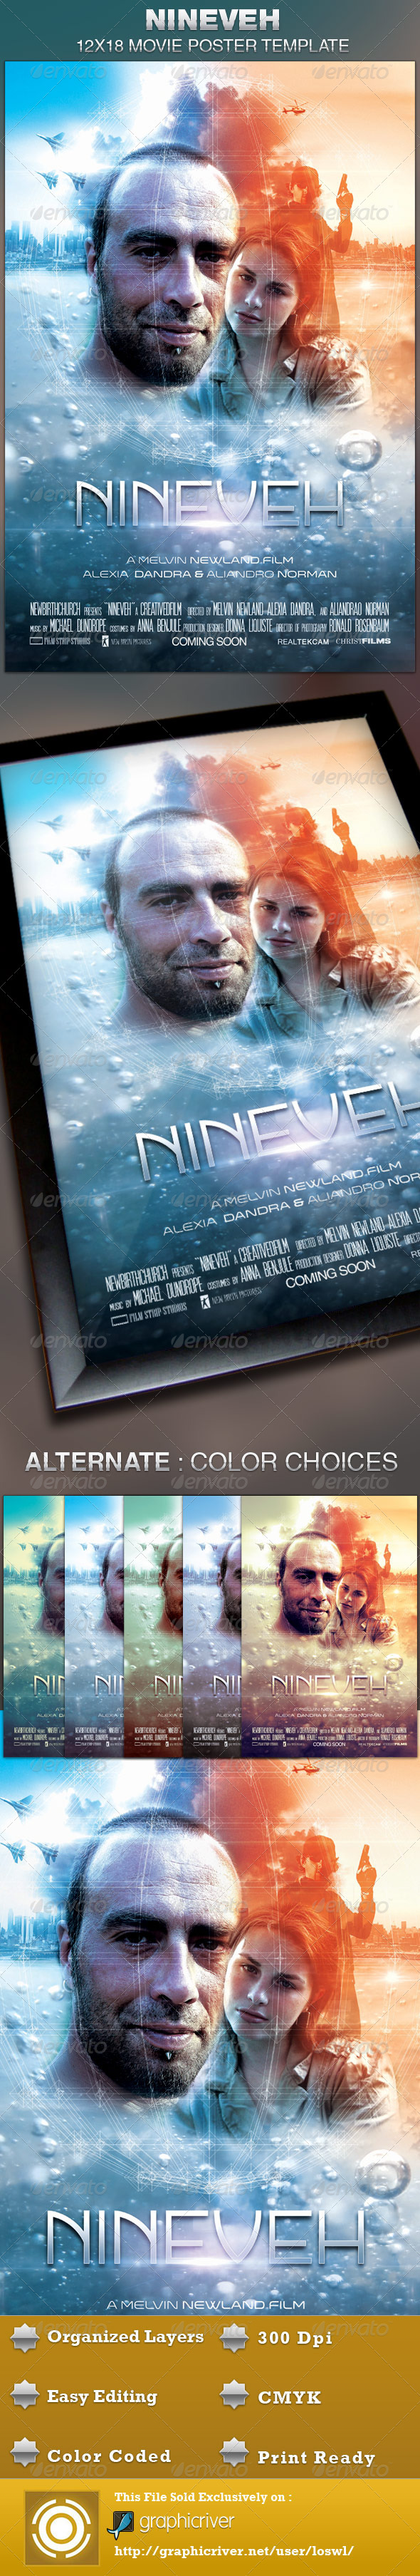 Nineveh Movie Poster Template - Church Flyers